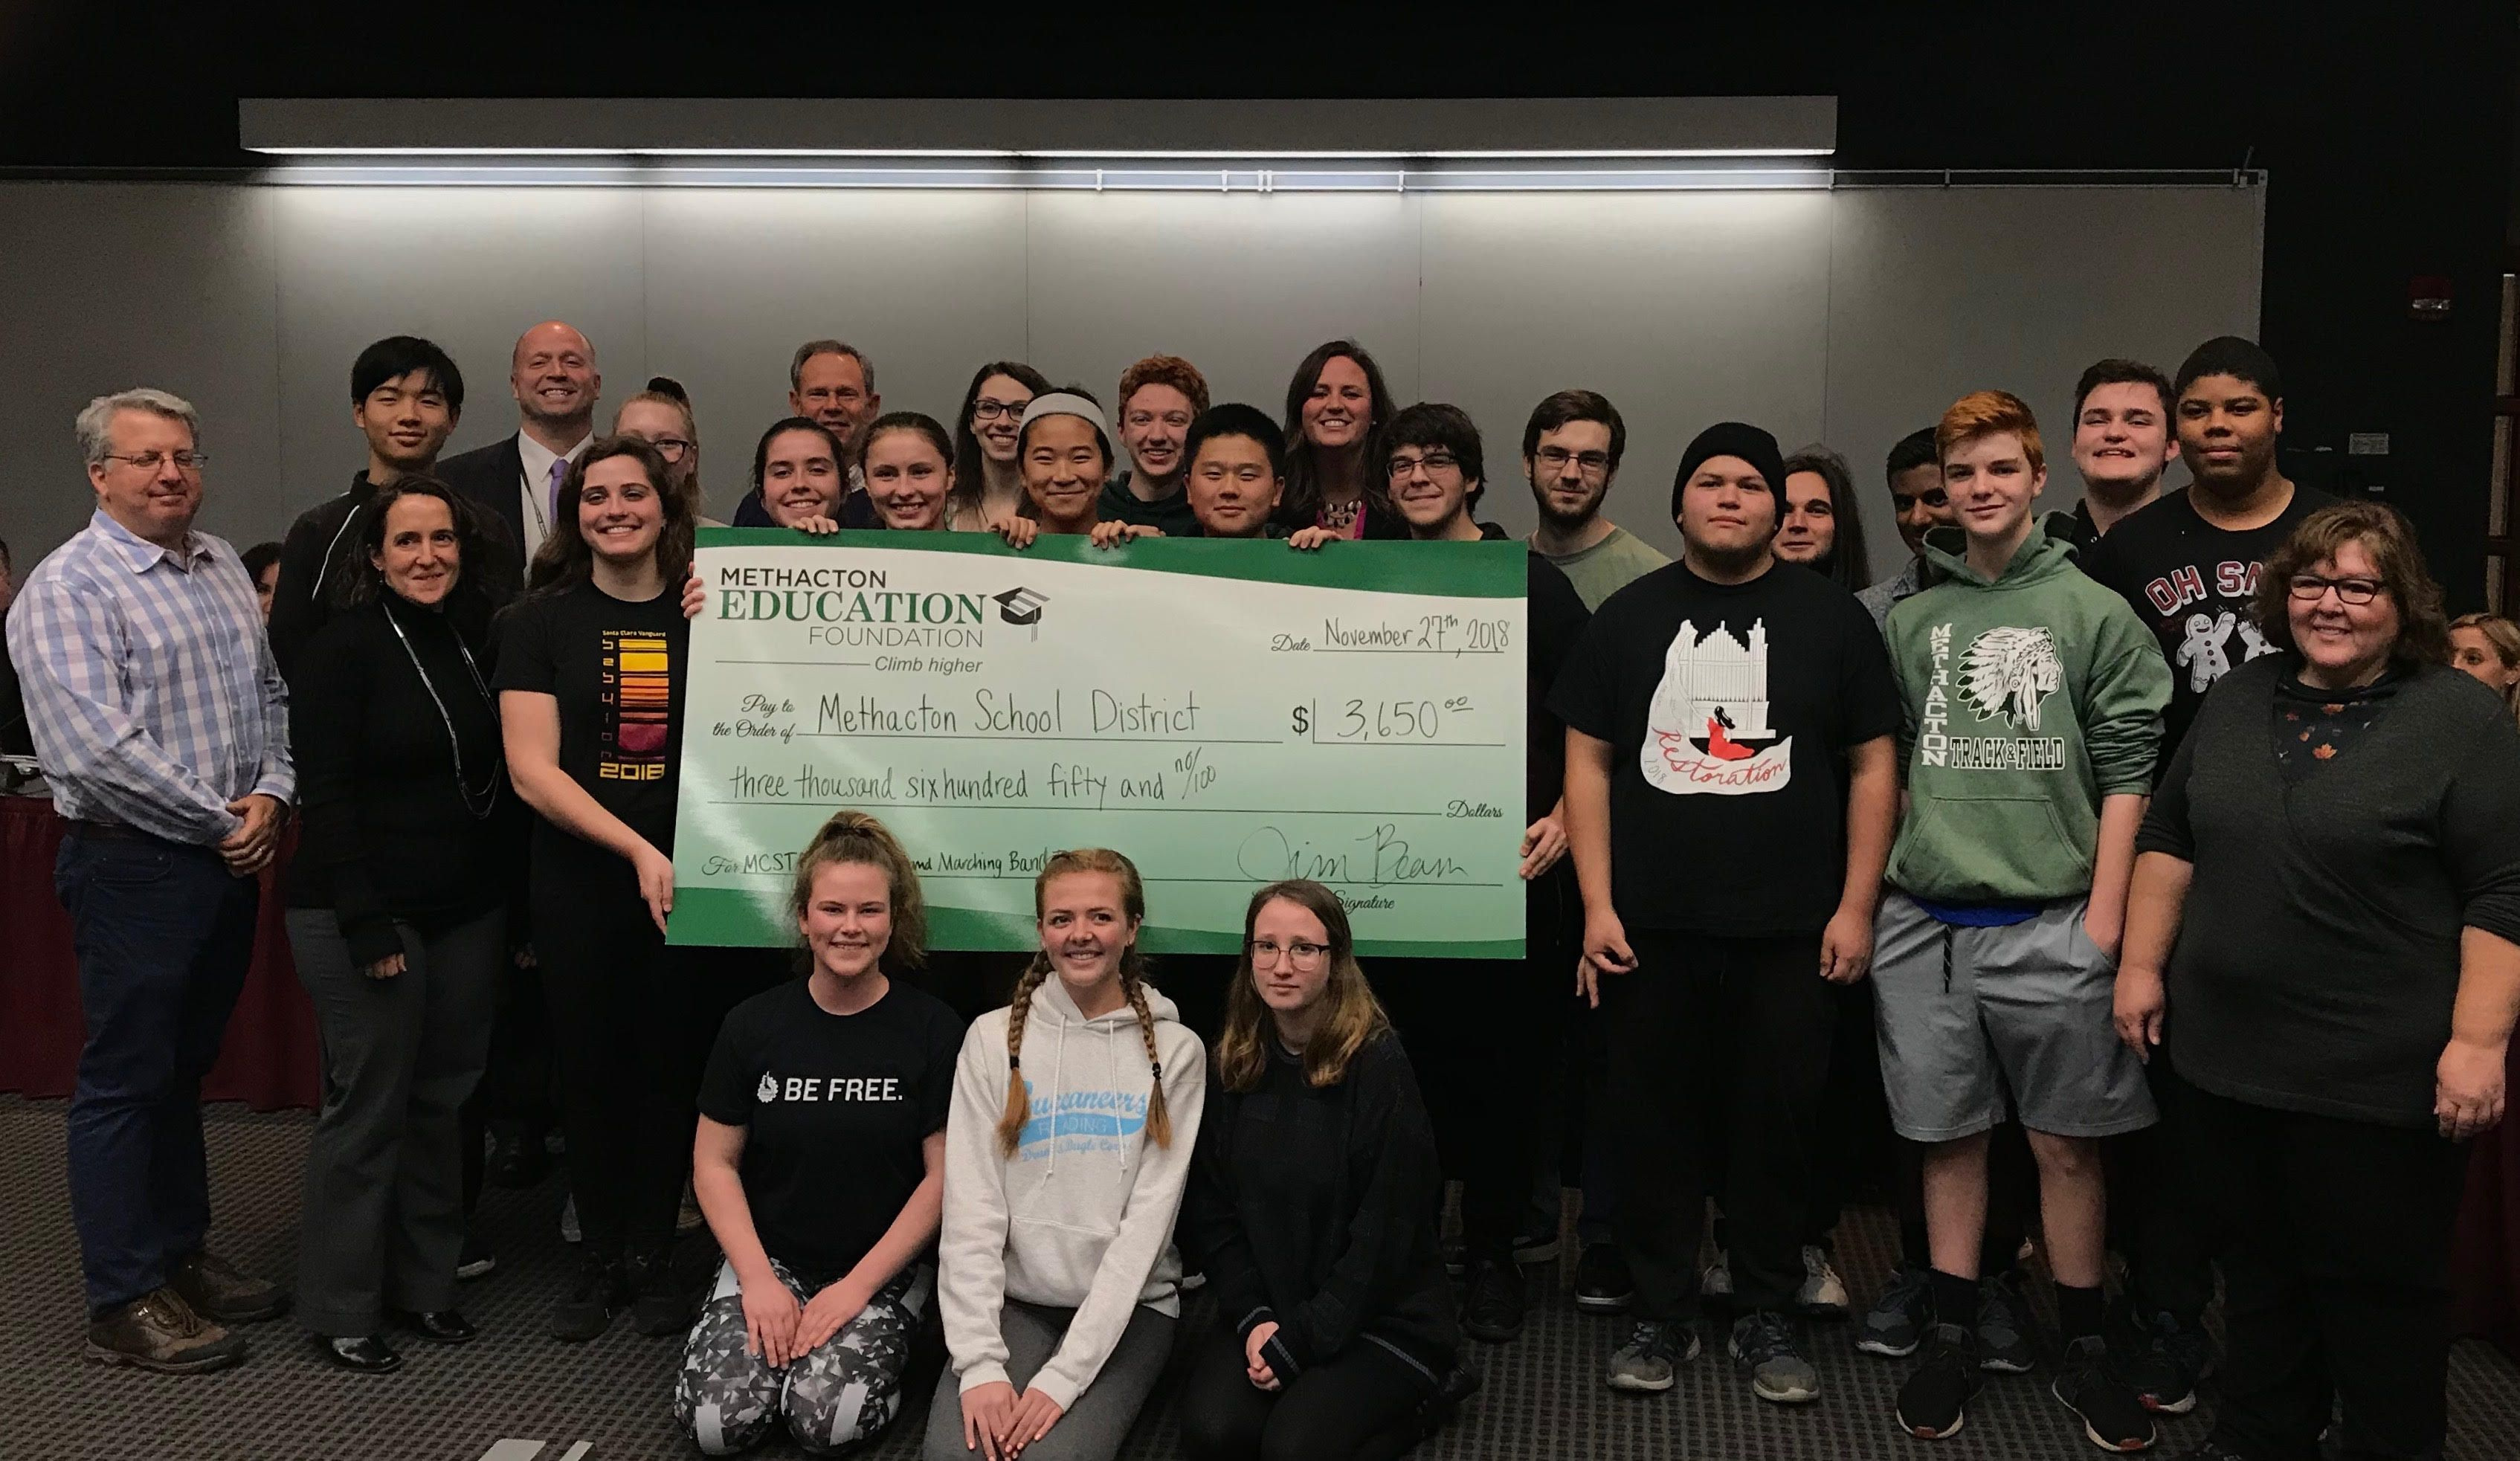 Foundation Awards Two Grants for Total of $3,650